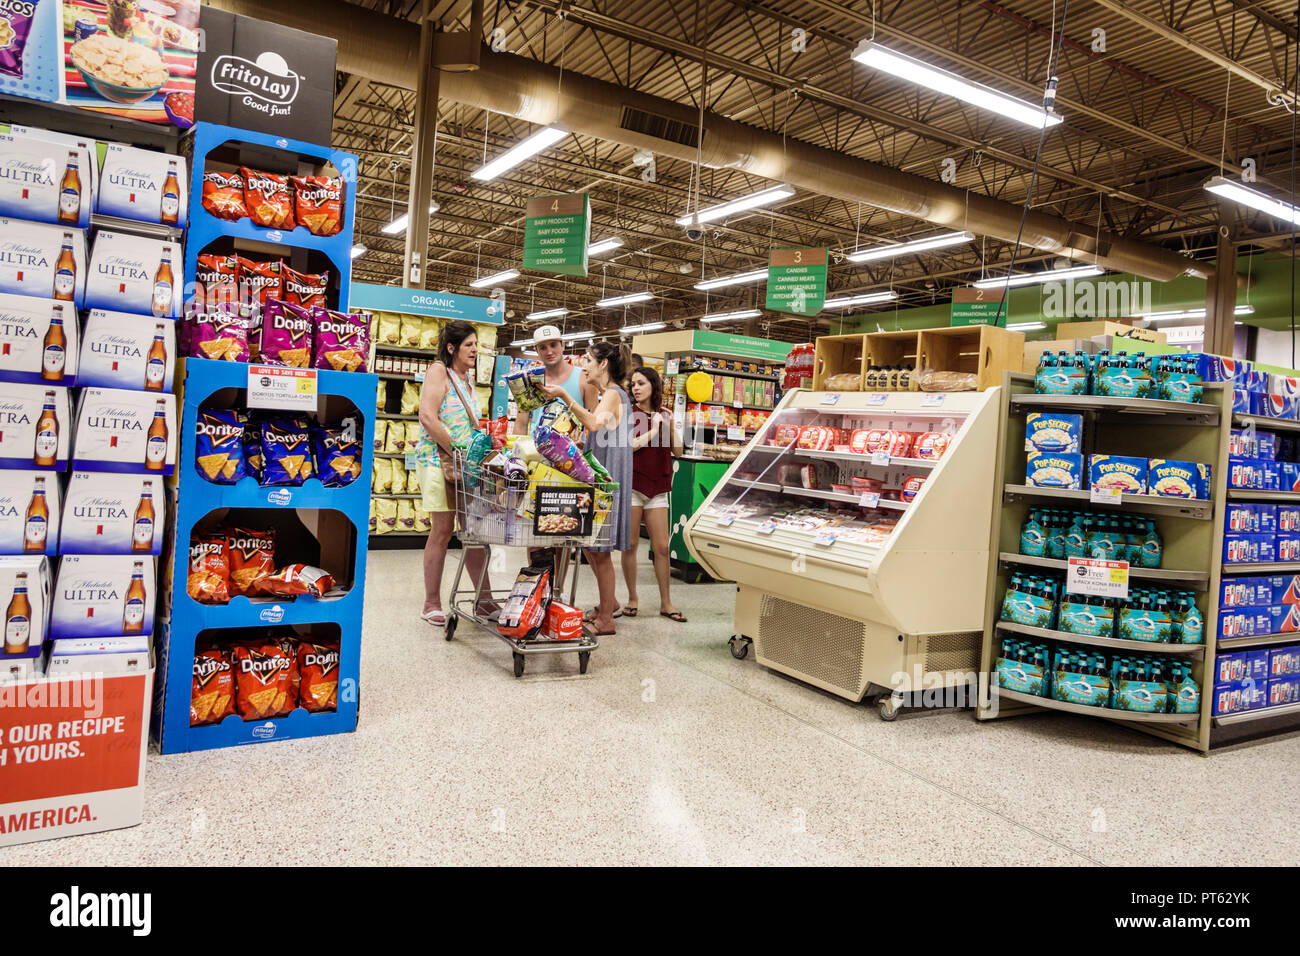 St. Saint Petersburg Florida Publix Grocery Store supermarket inside display sale family shopping cart trolley Frito Lay Doritos - Stock Image